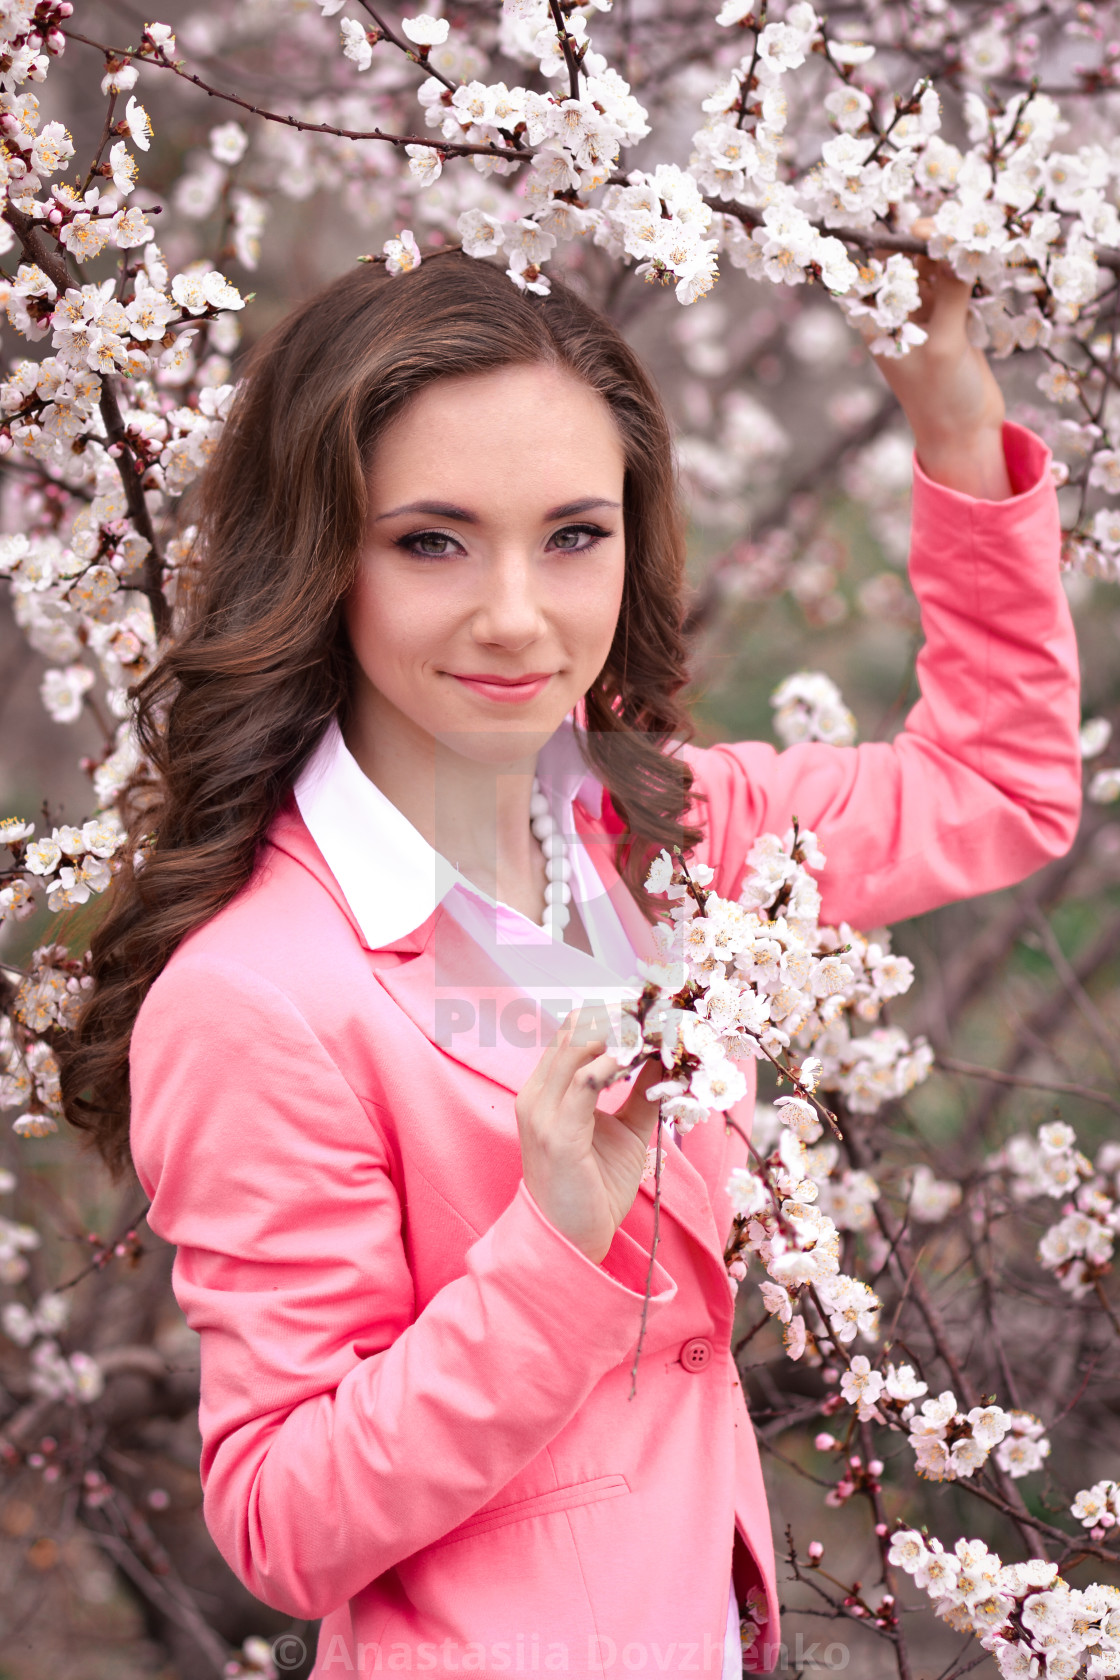 Very Beautiful Girl In Blossoming Trees In Spring Garden Spring